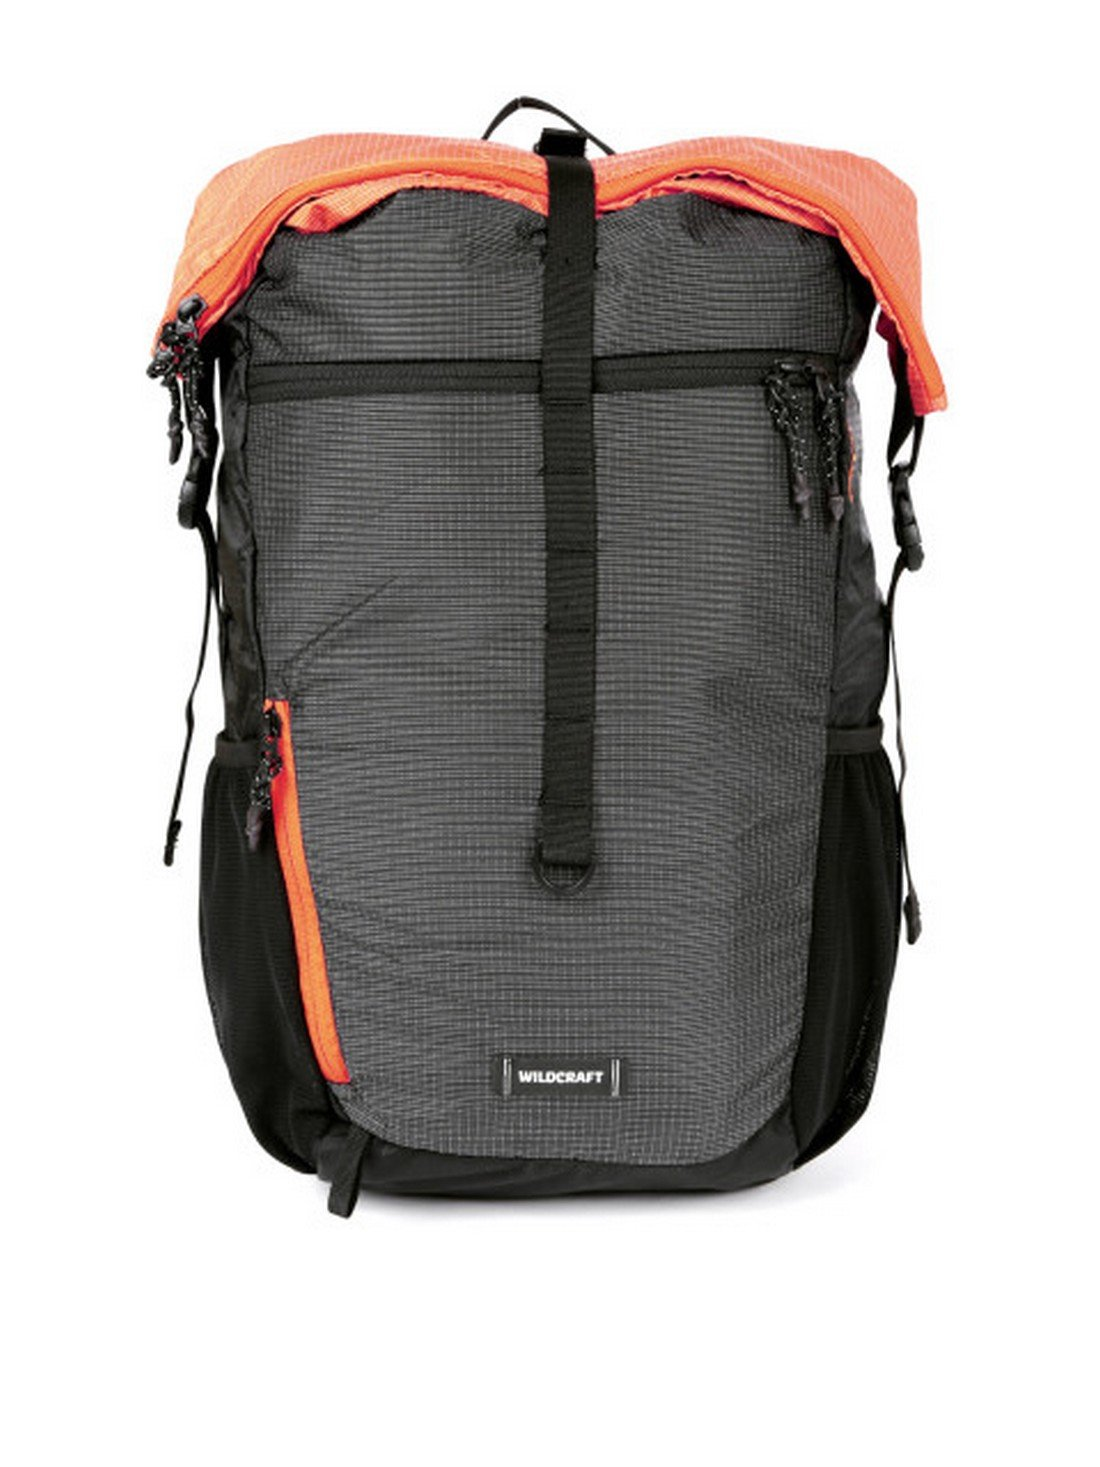 Wildcraft 22.9 cms Orng_Blk Casual Backpack (11532)